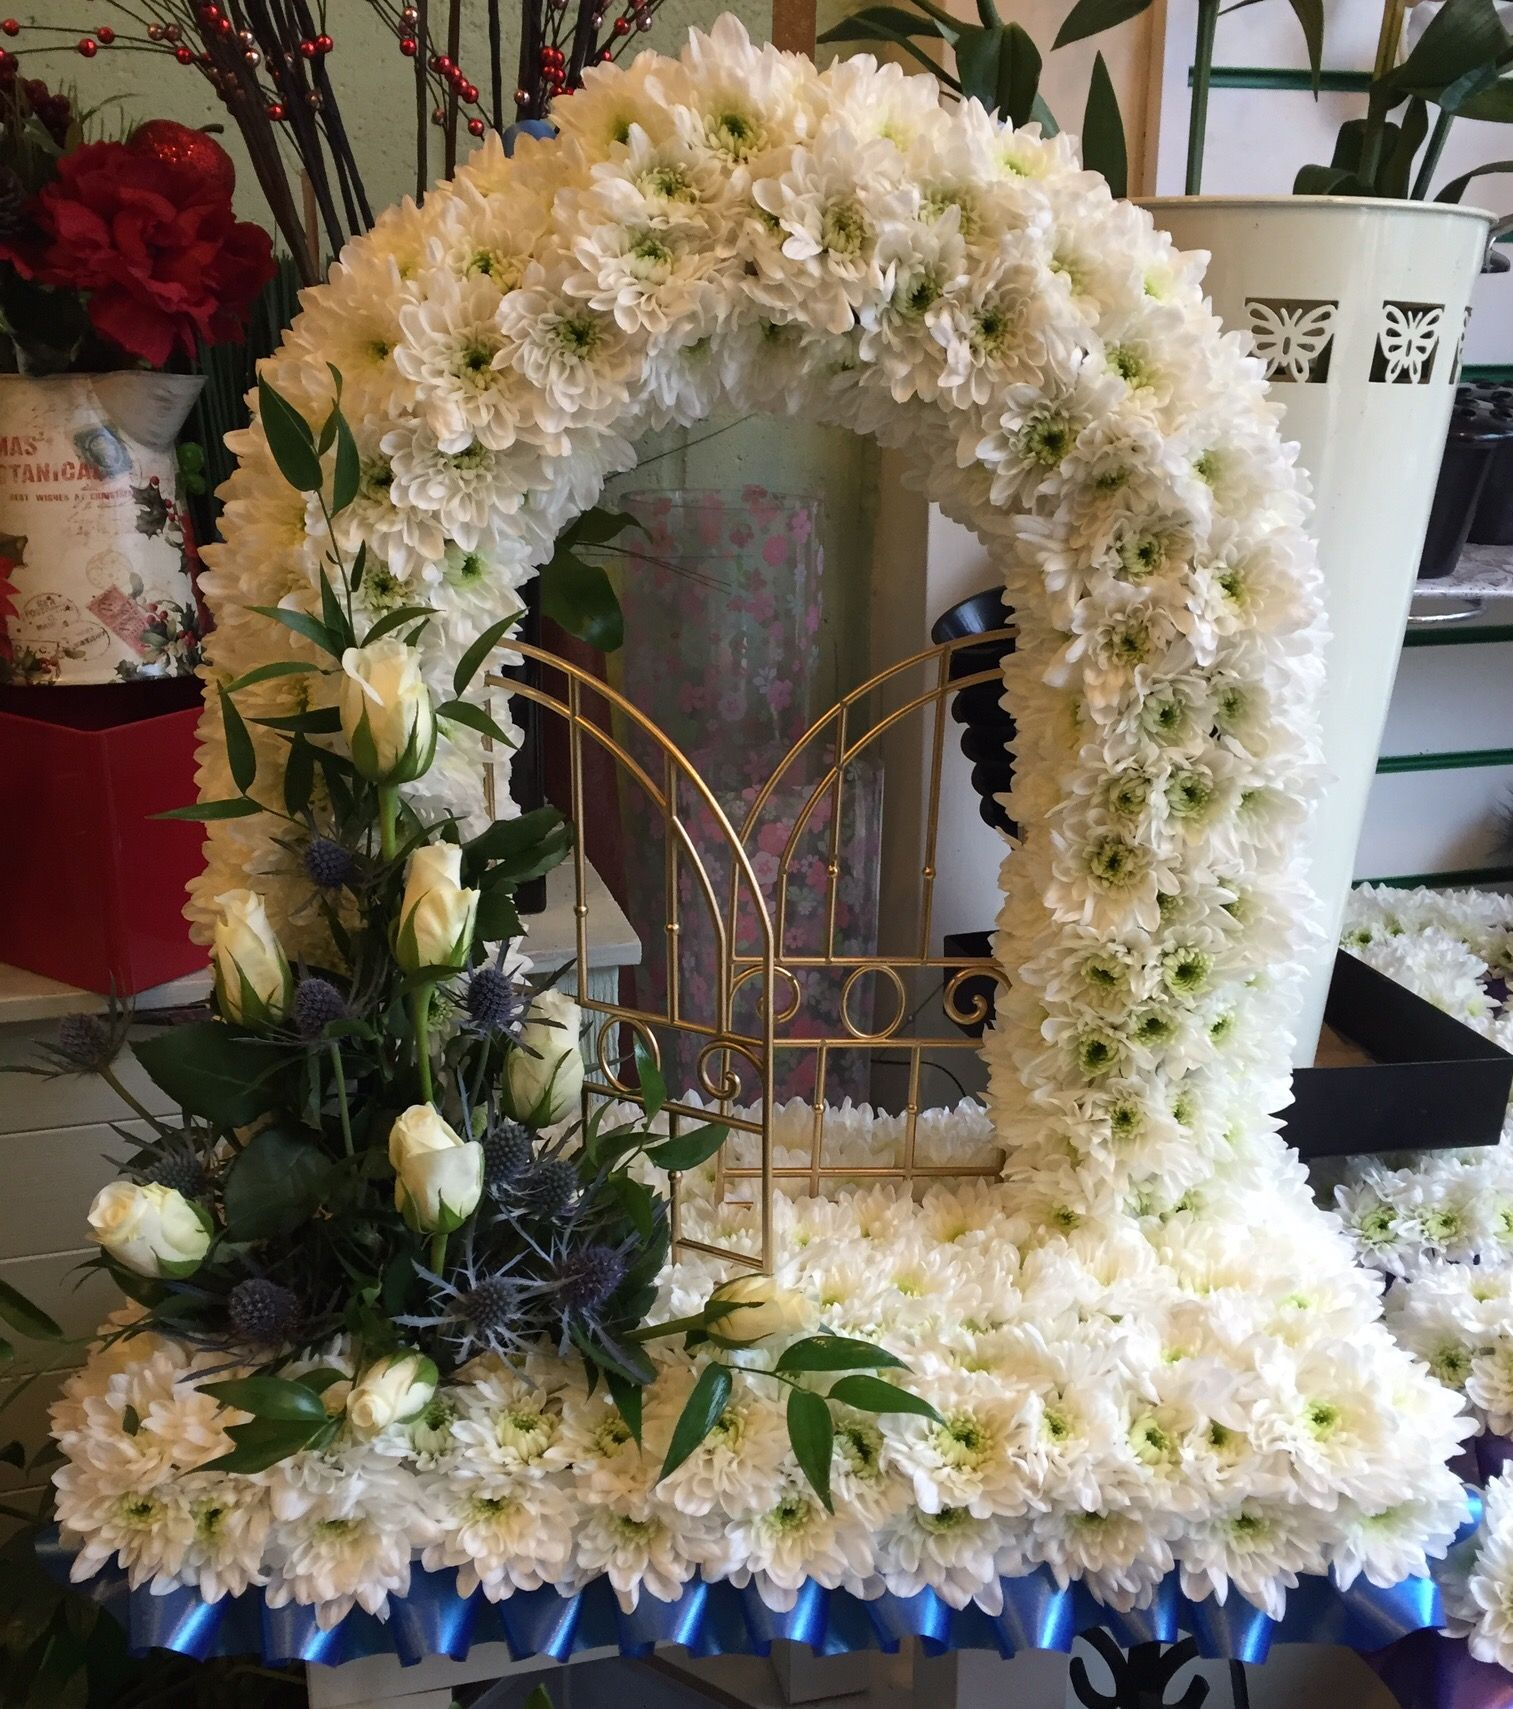 Gates of heaven funeral tribute butterfliesandblooms gates of heaven funeral tribute butterfliesandblooms izmirmasajfo